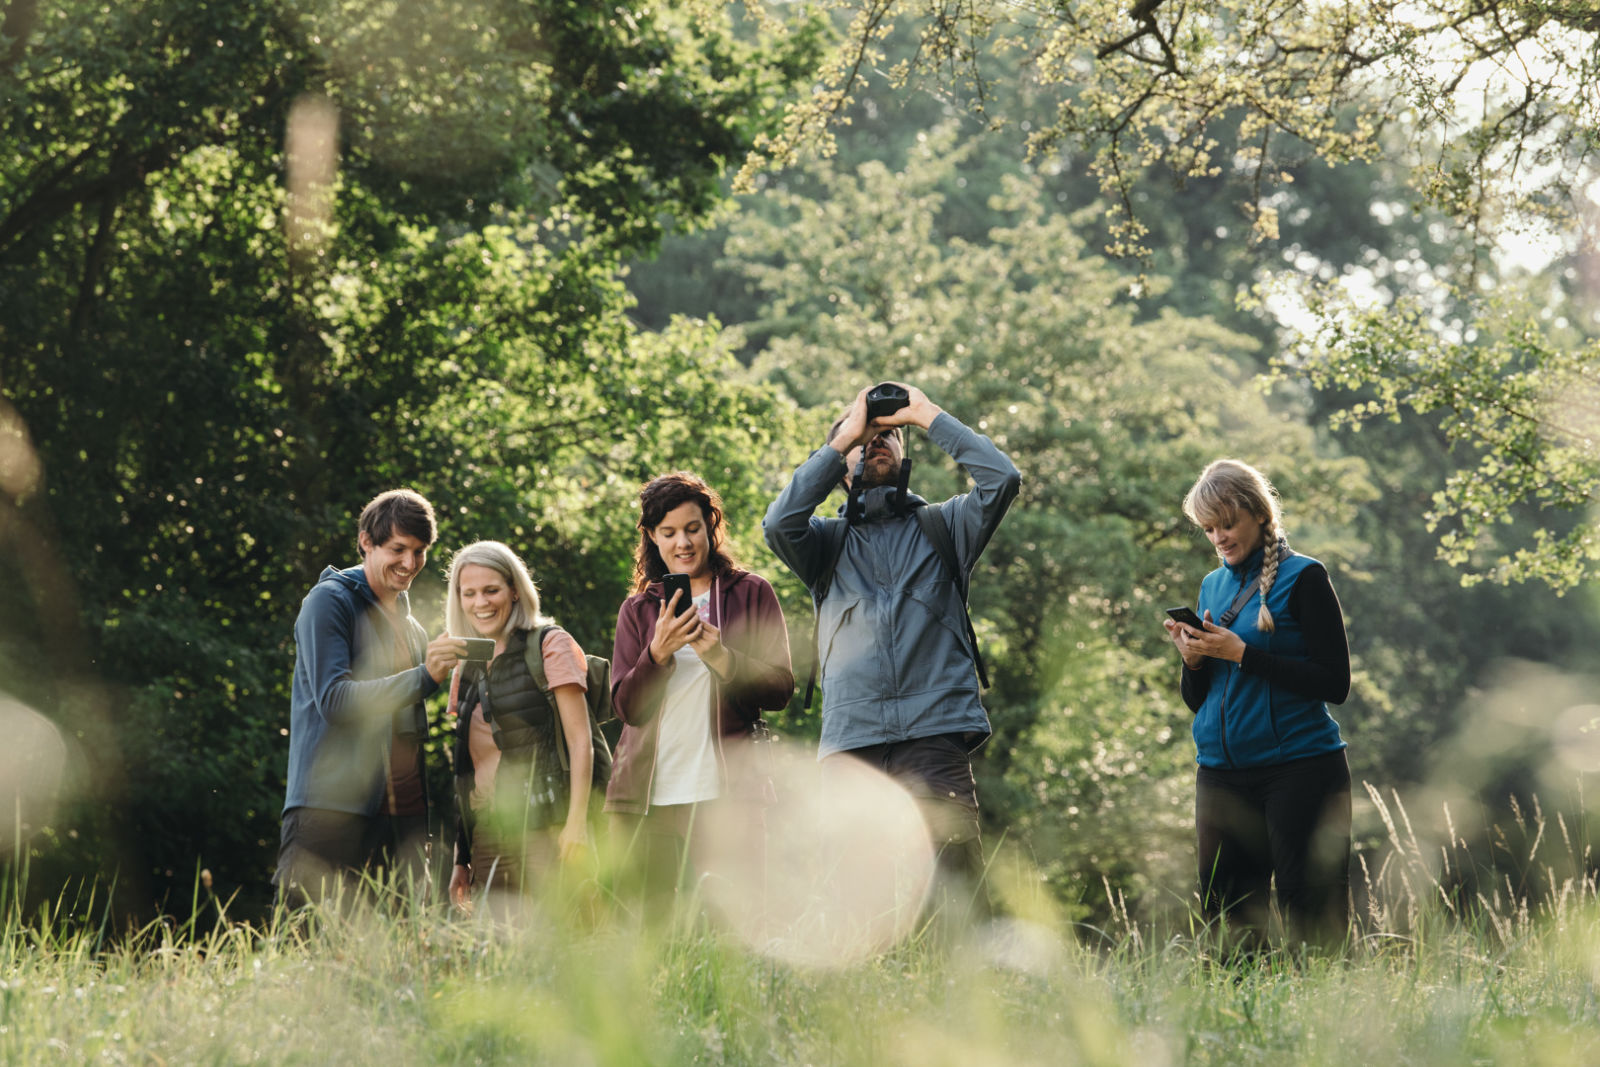 The fun of exploration – how the SWAROVSKI OPTIK dG turns everyone into a wildlife expert - Up to five devices may livestream the dG's live video. Watch wildlife like a pro and enjoy spotting more.